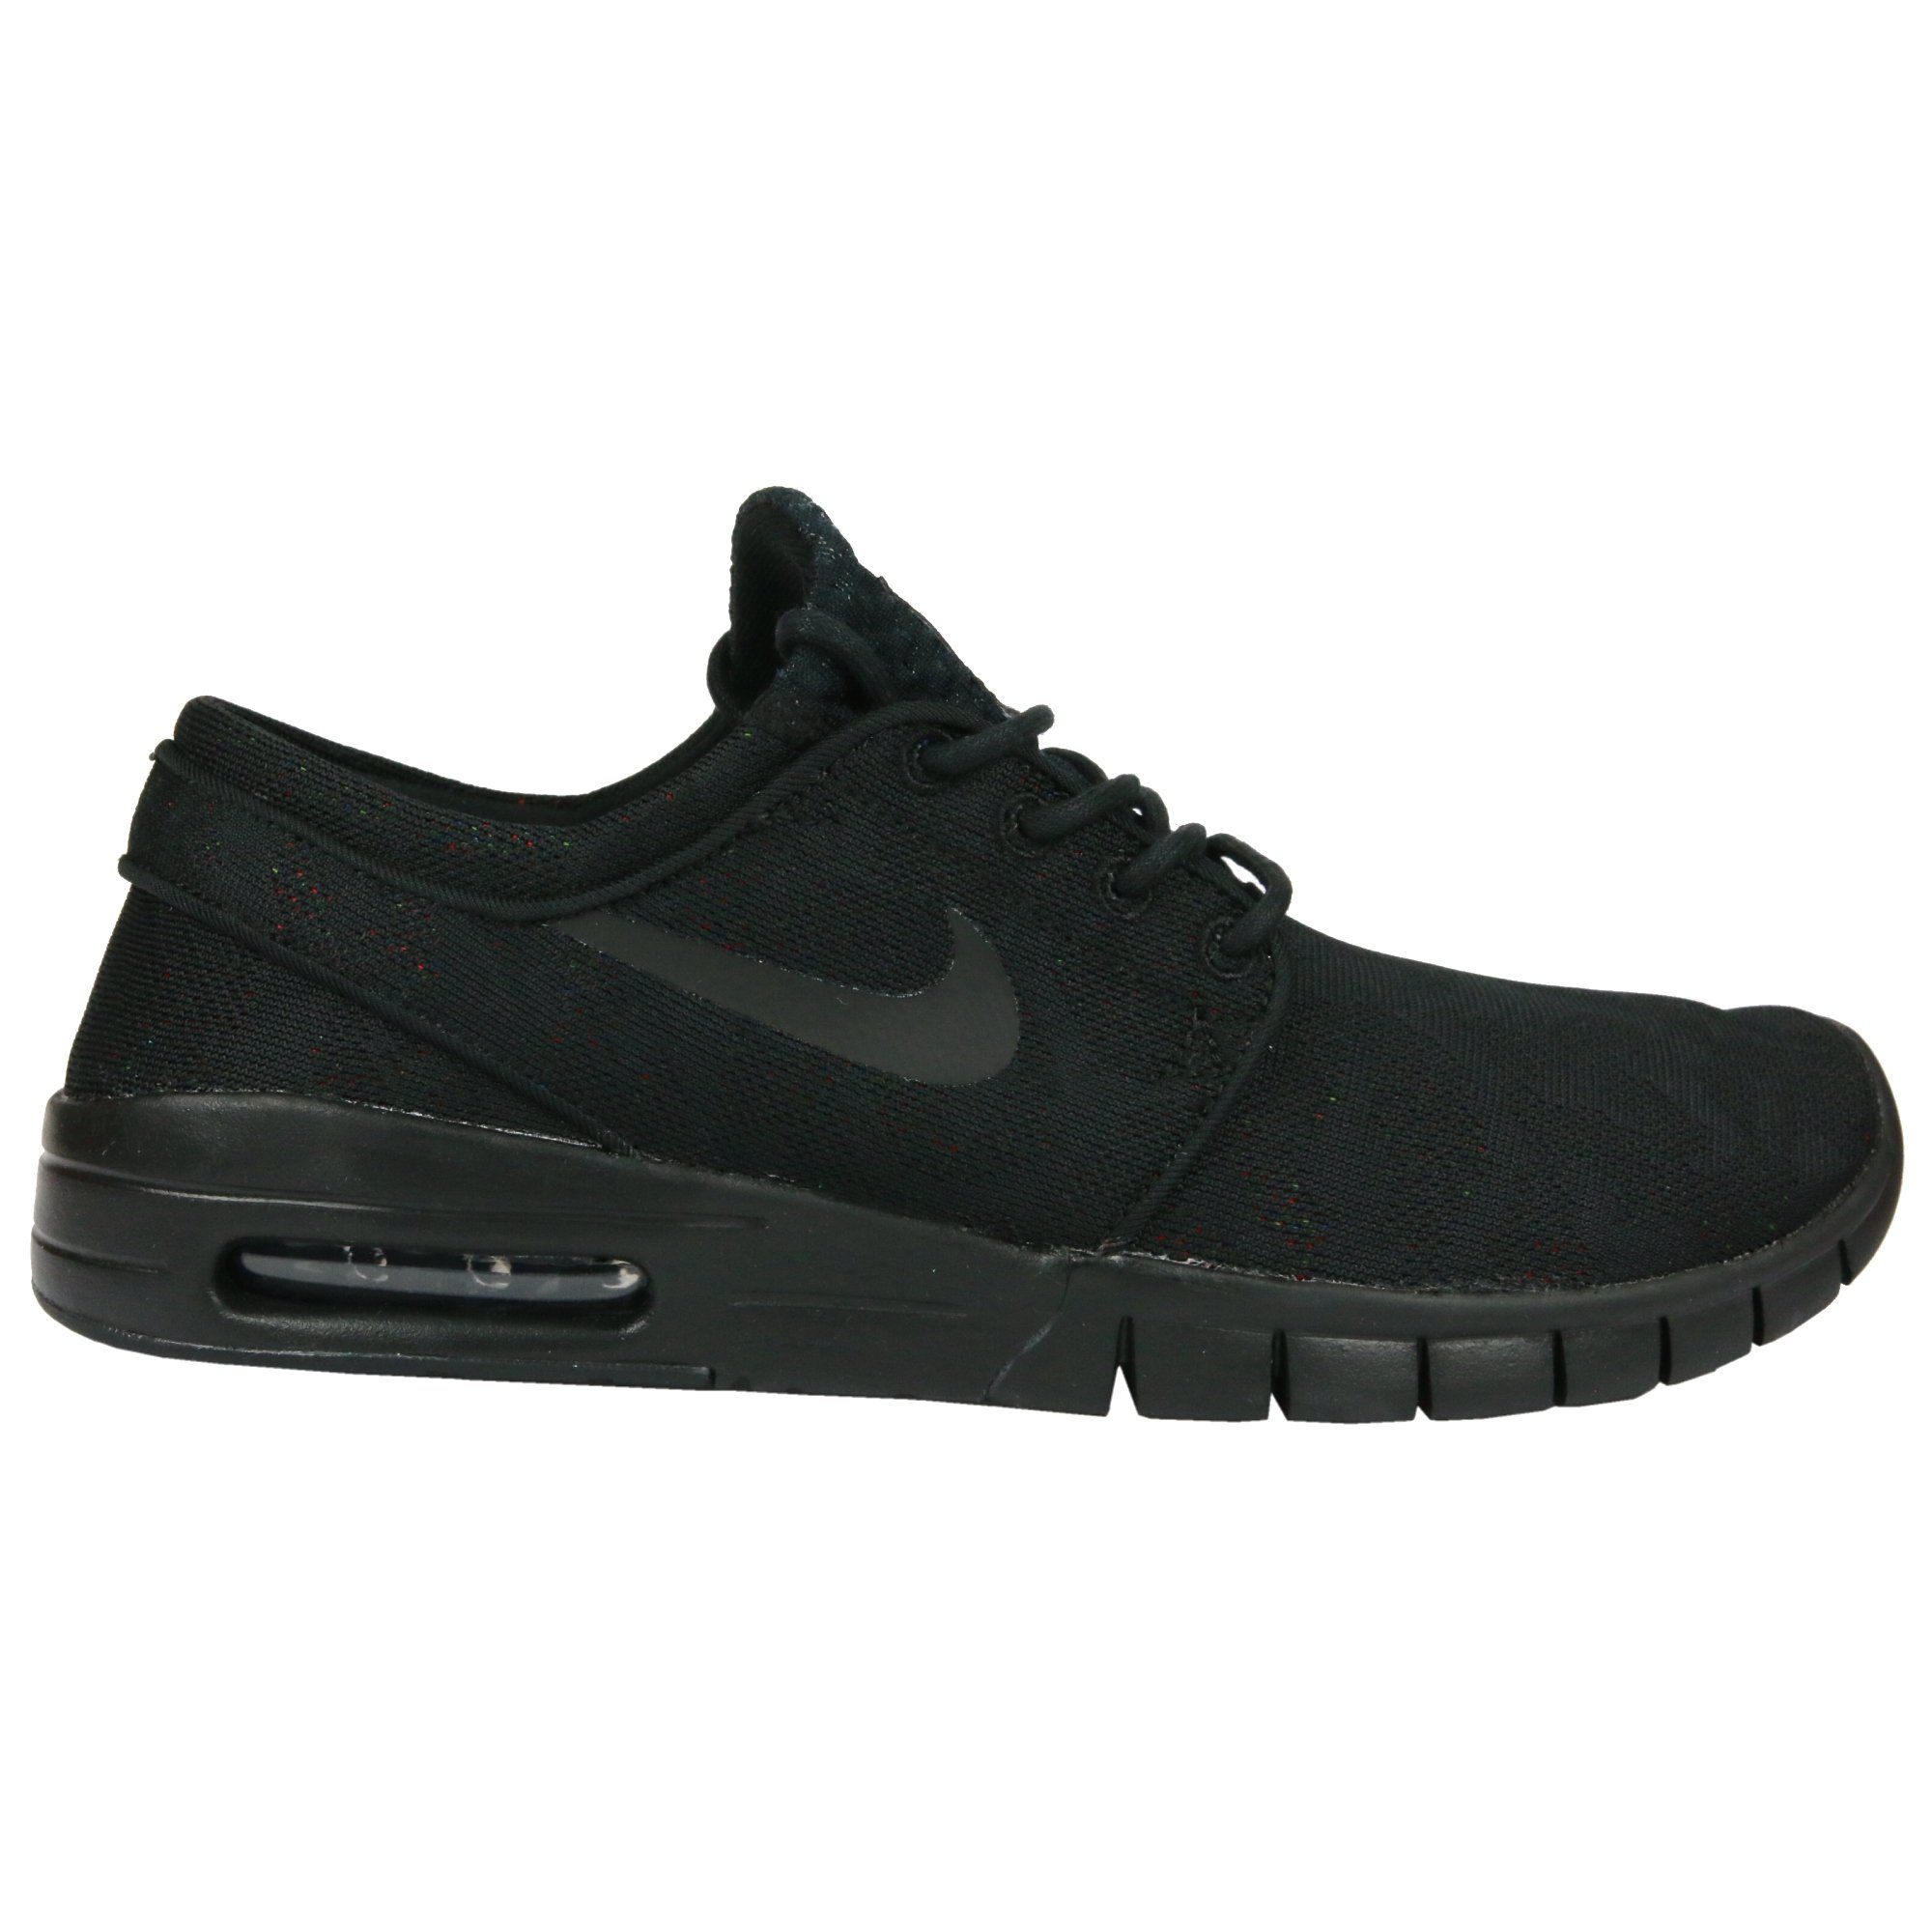 Nike Air Stefan Janoski Max Premium Sneaker Current Model 2016 black, EU Shoe Size:EUR 48.5, Color black